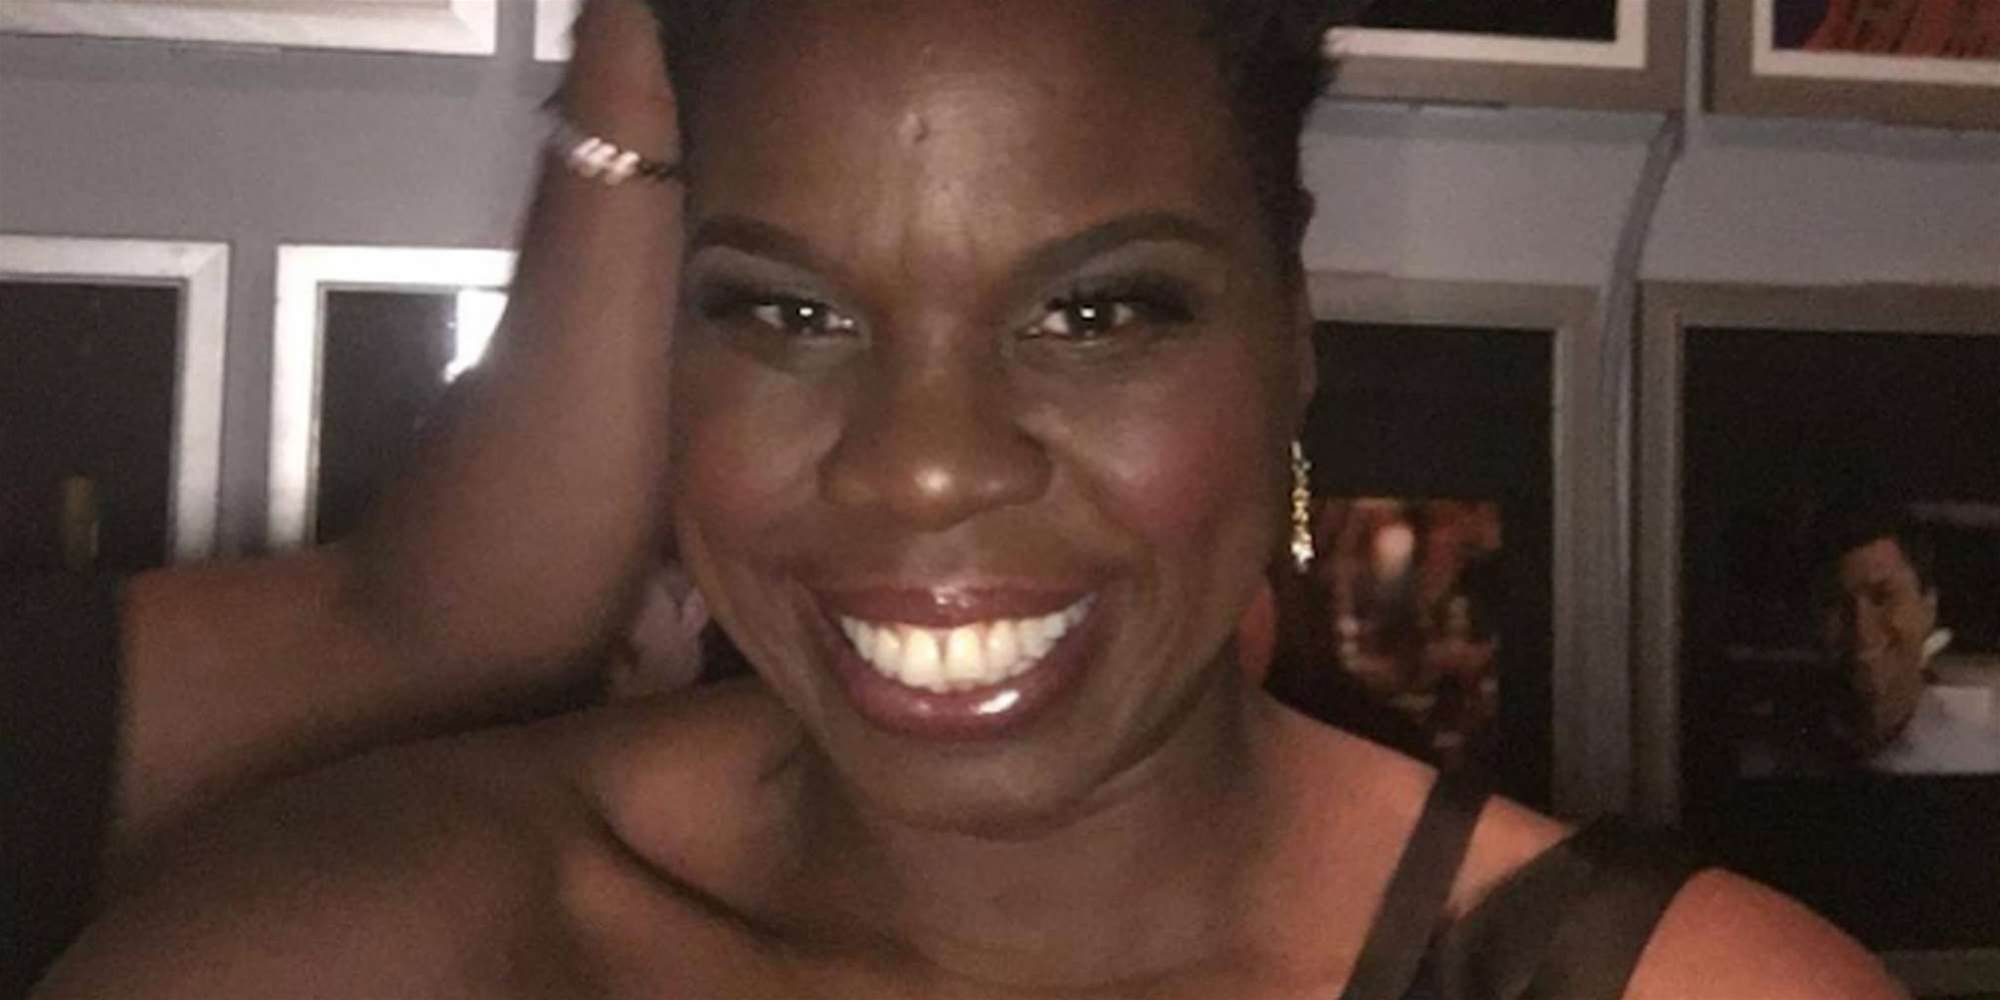 Twitter takes action on Leslie Jones abuse, perma-bans Milo Yiannopoulos